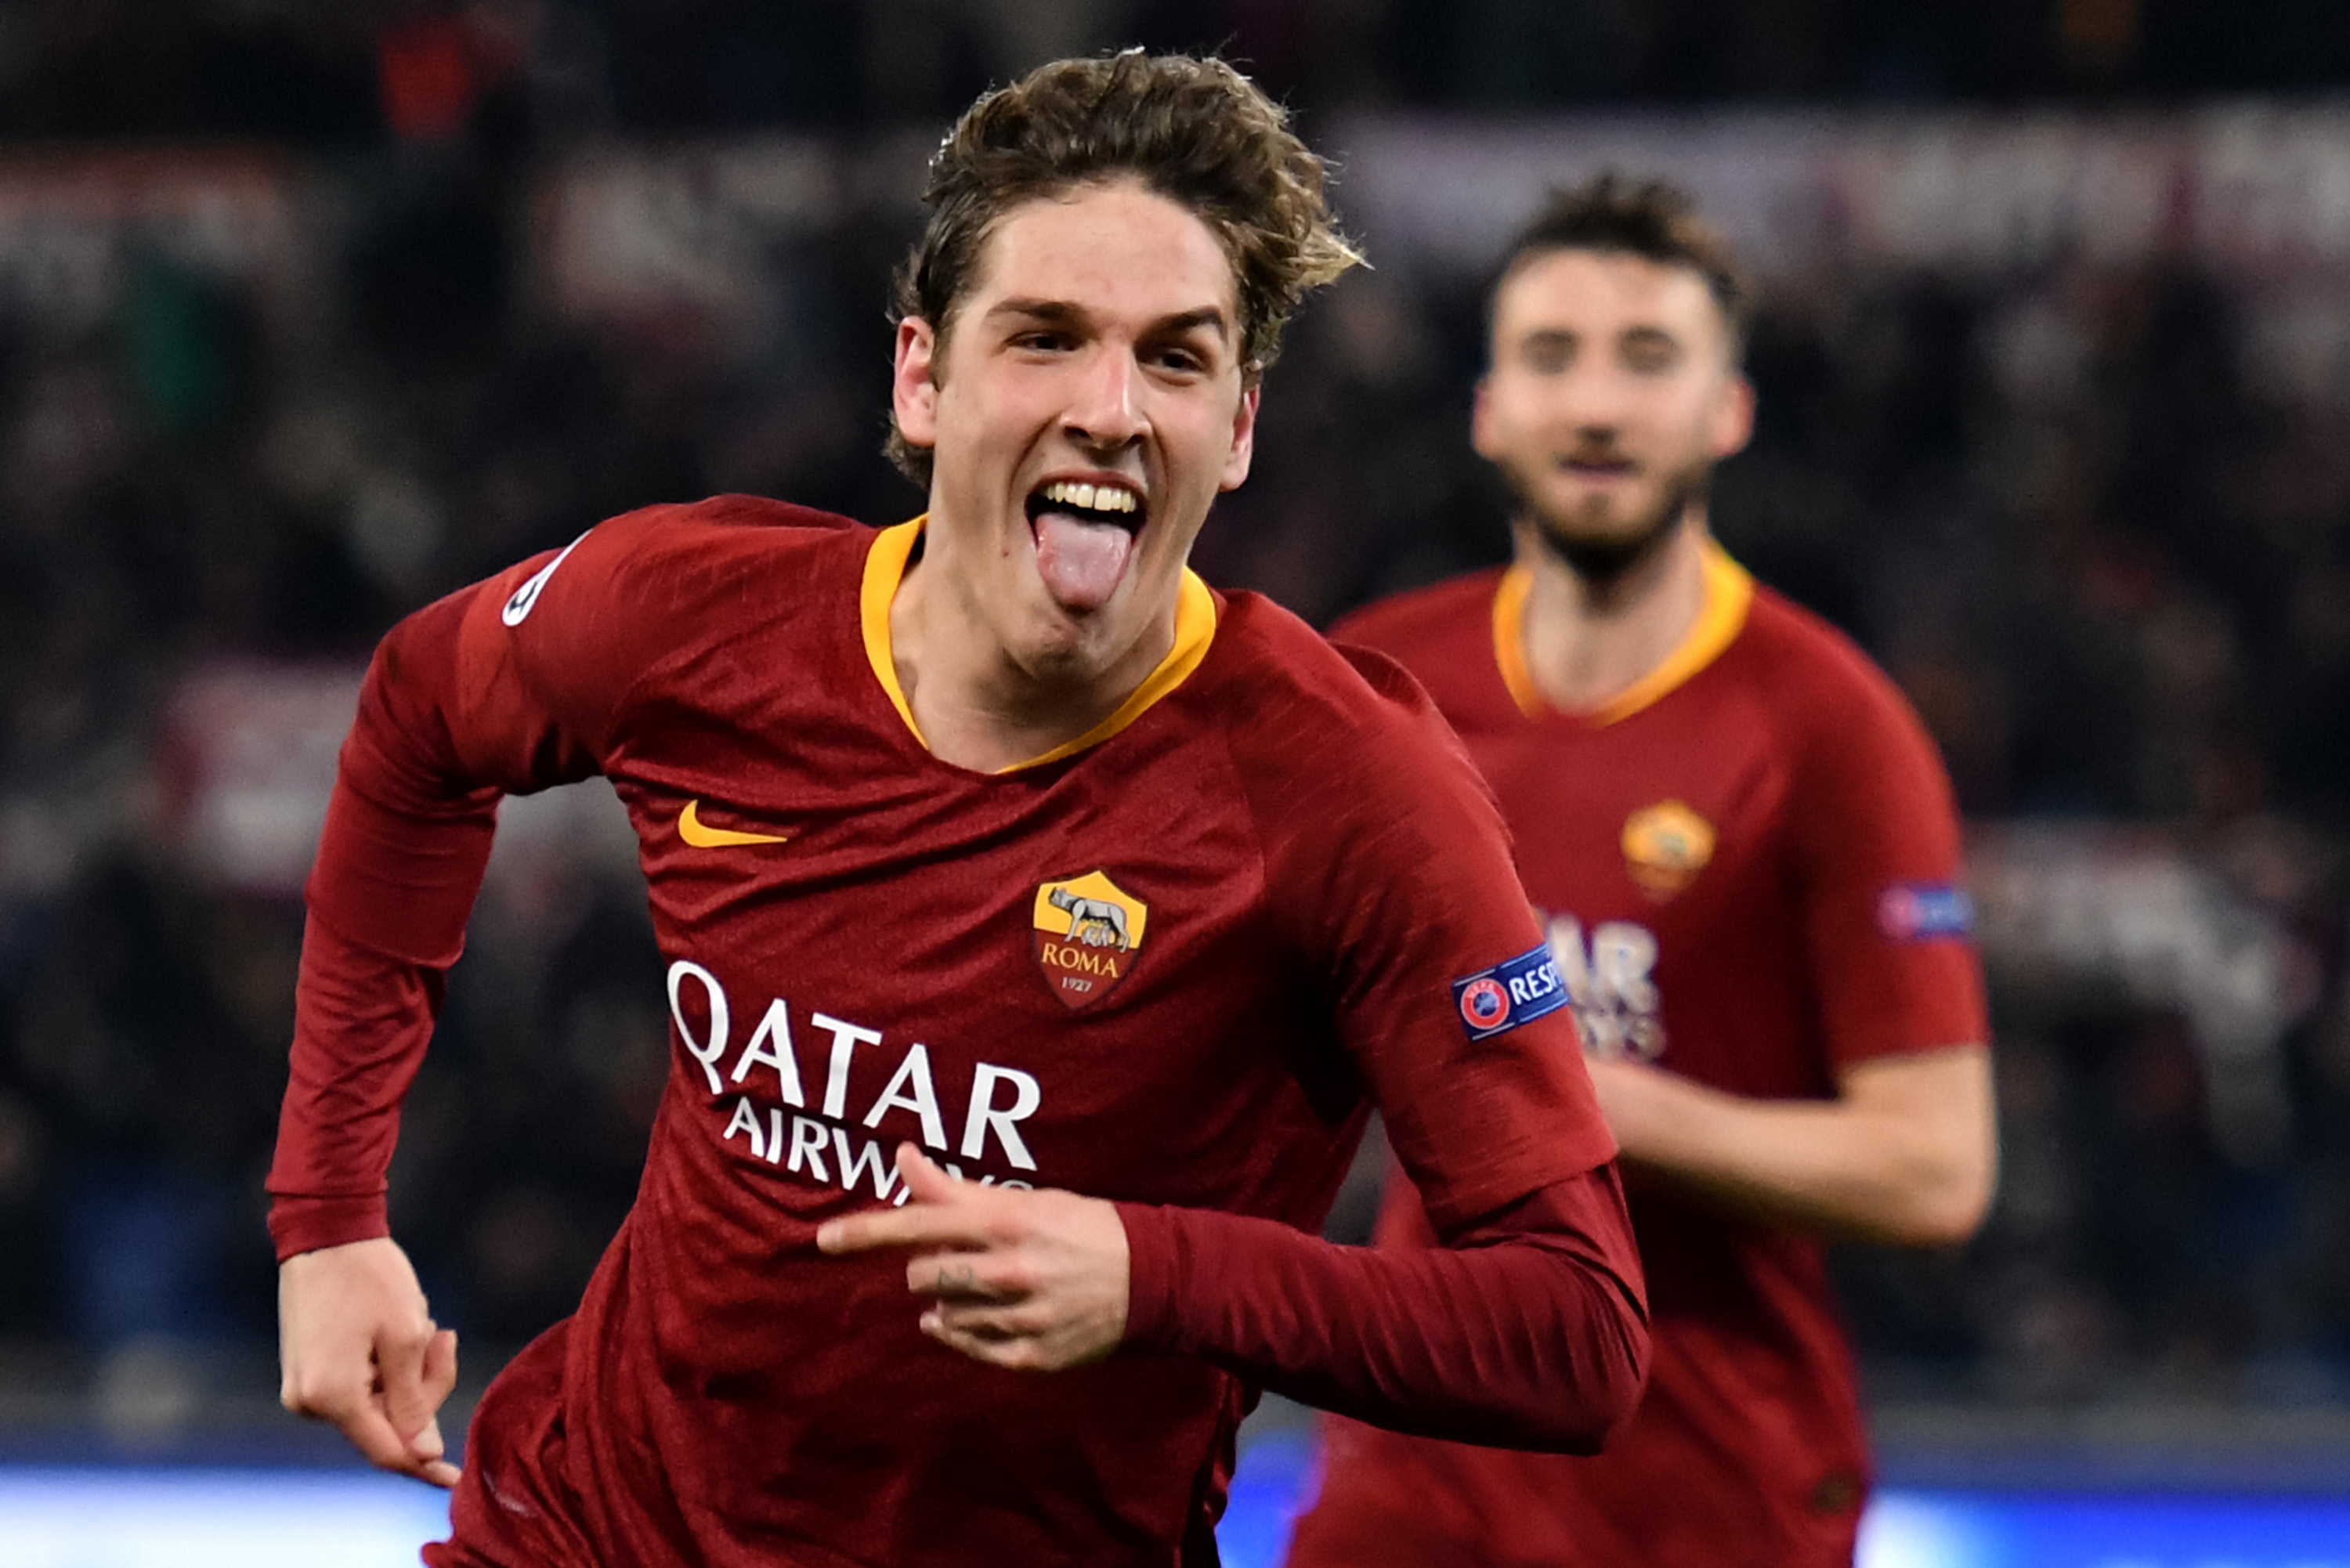 Zaniolo could be a brilliant signing for Arsenal. Image: PA Images